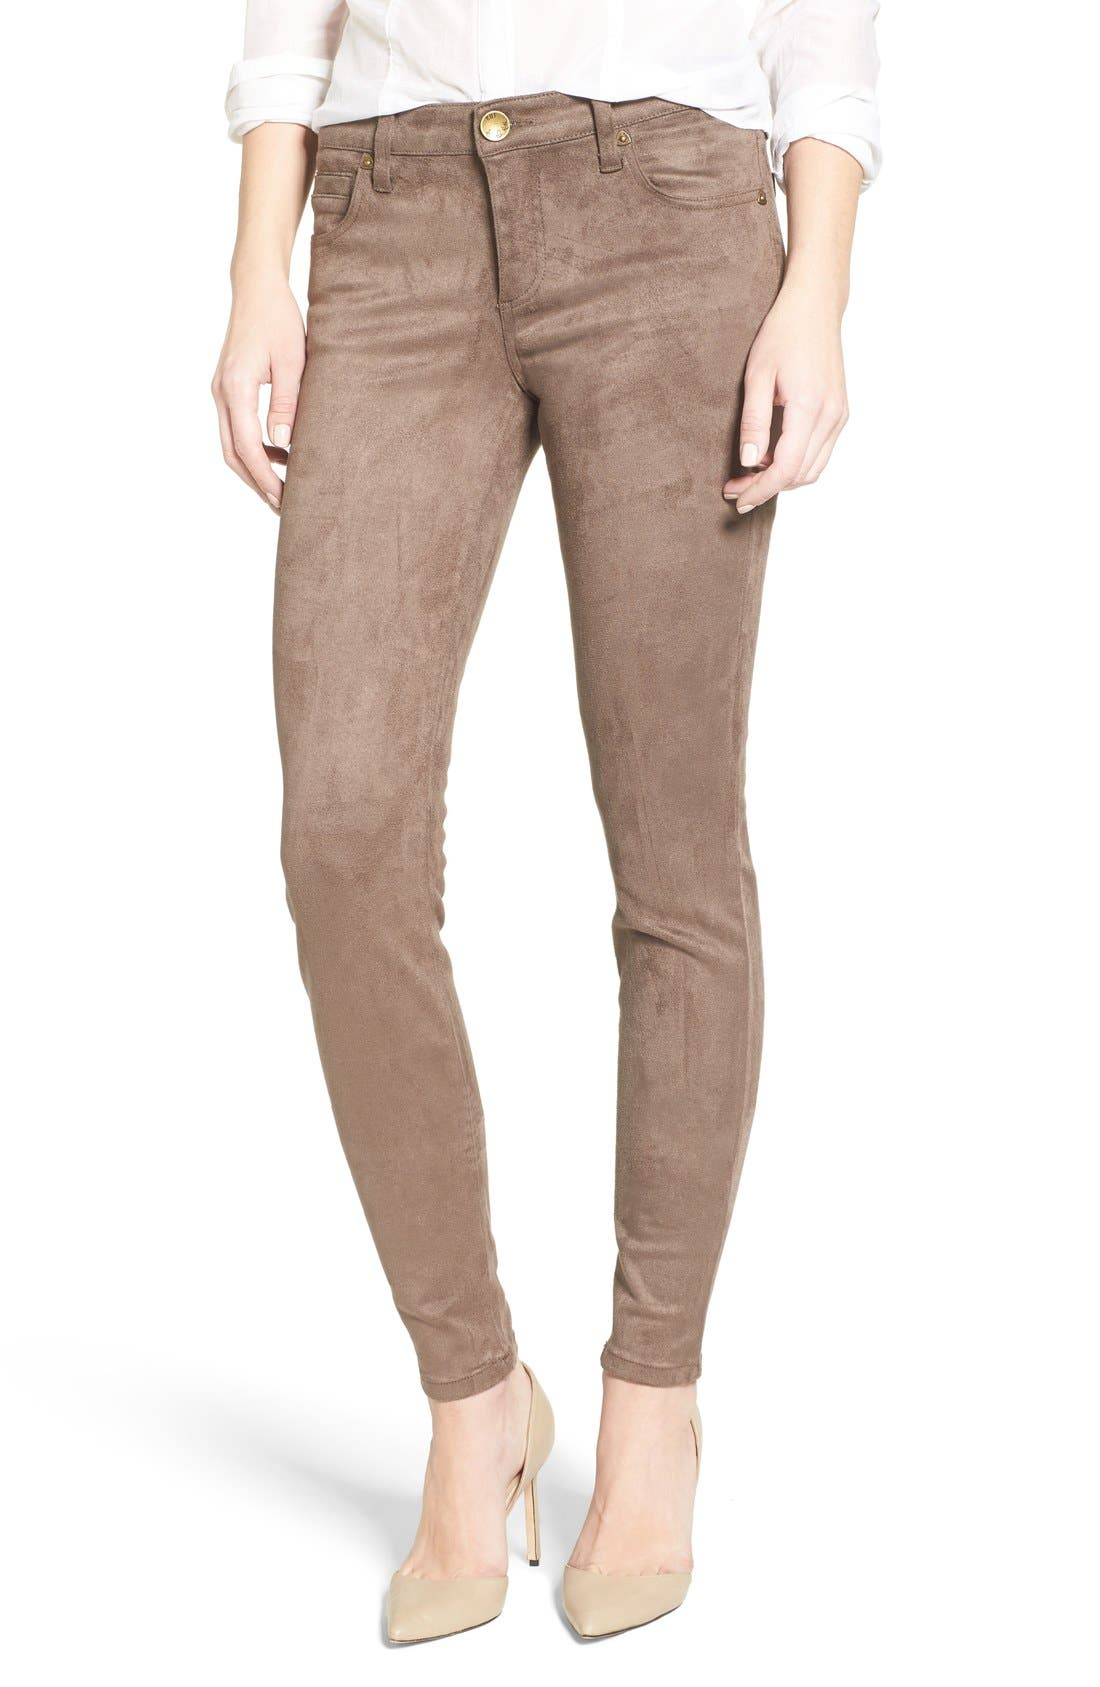 KUT from the Kloth Mia Faux Suede Skinny Jeans